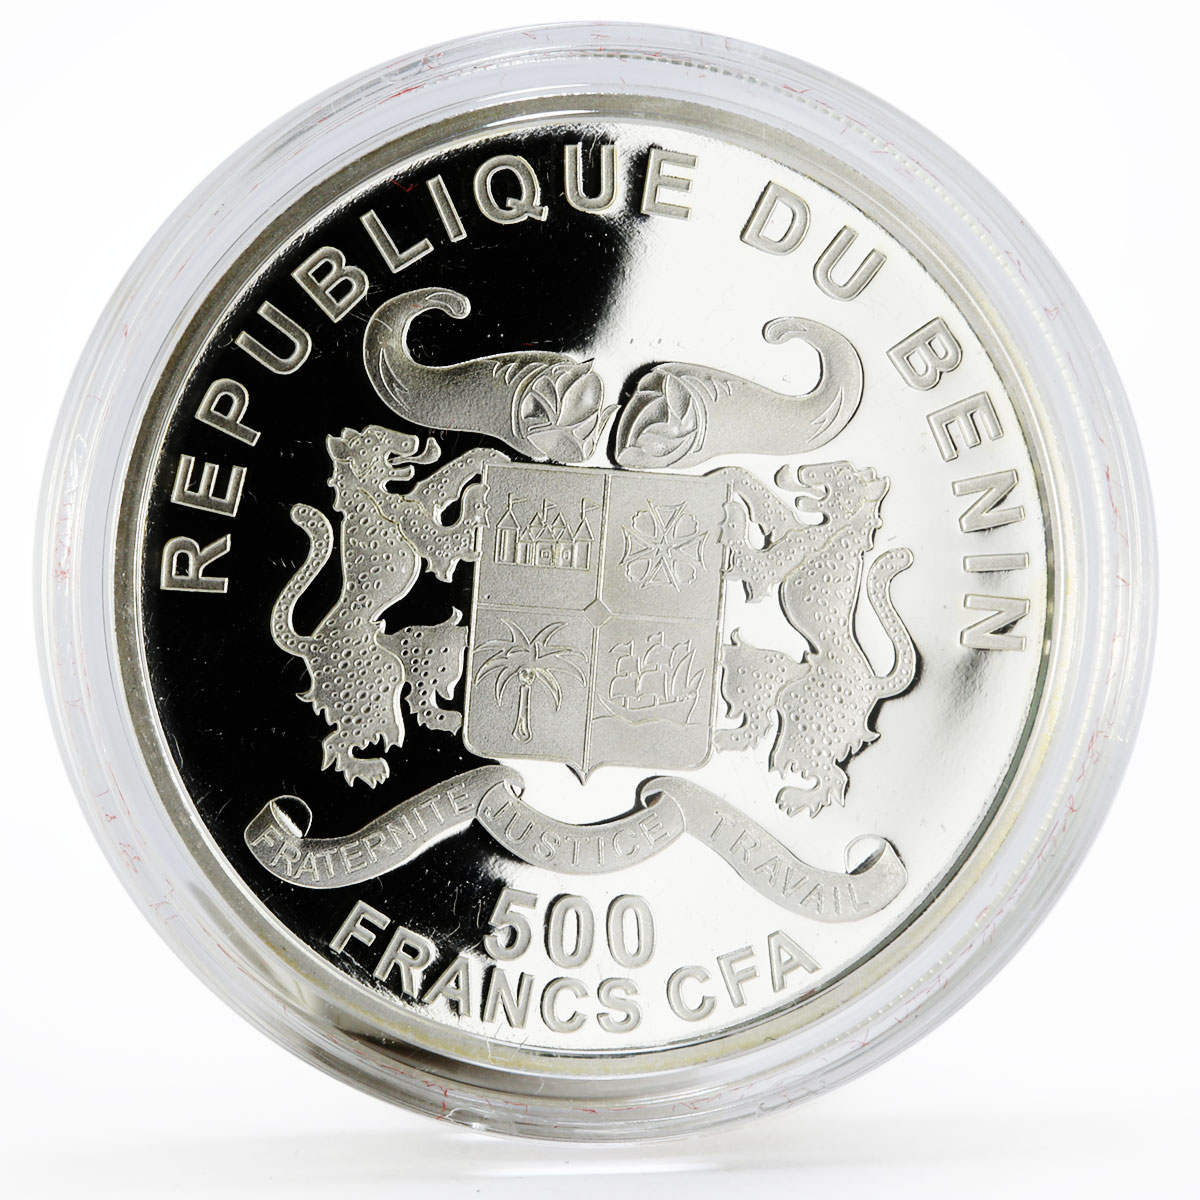 Benin 500 francs 85 Years of Vatican State Pope John Paul II silver coin 2014